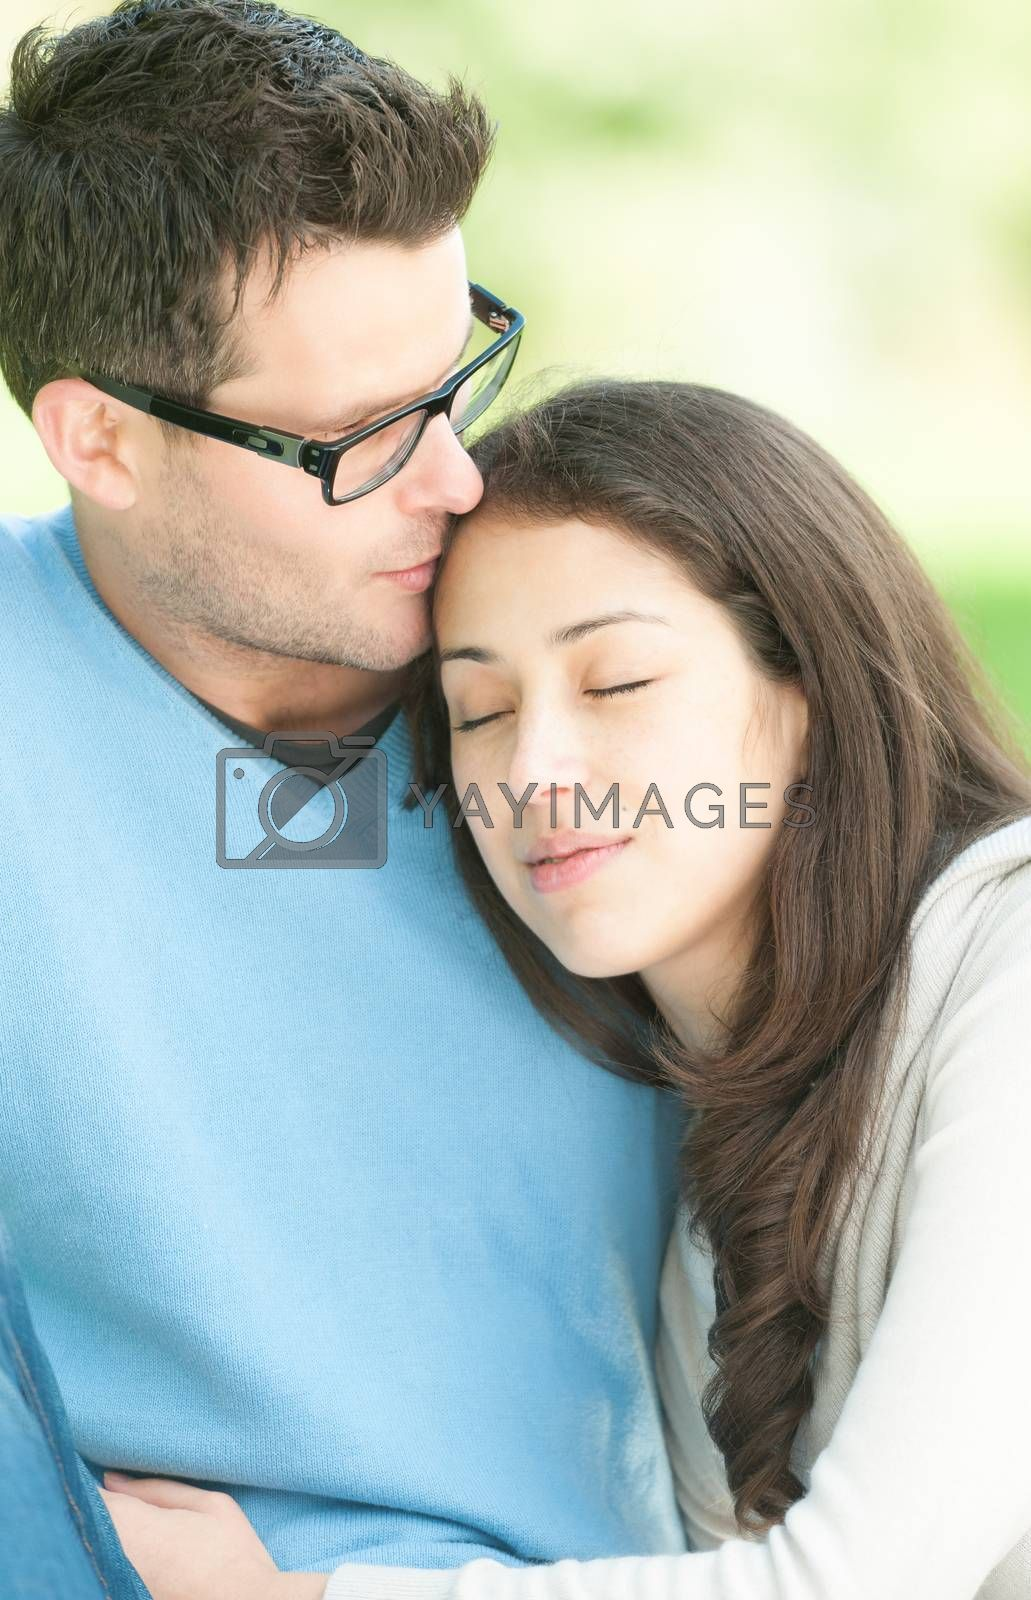 Portrait of young sweet couple spending time outdoor together. Woman leaning on man's shoulder with her eyes closed. Quiet and peaceful atmosphere. Romantic relationships. Family and love.